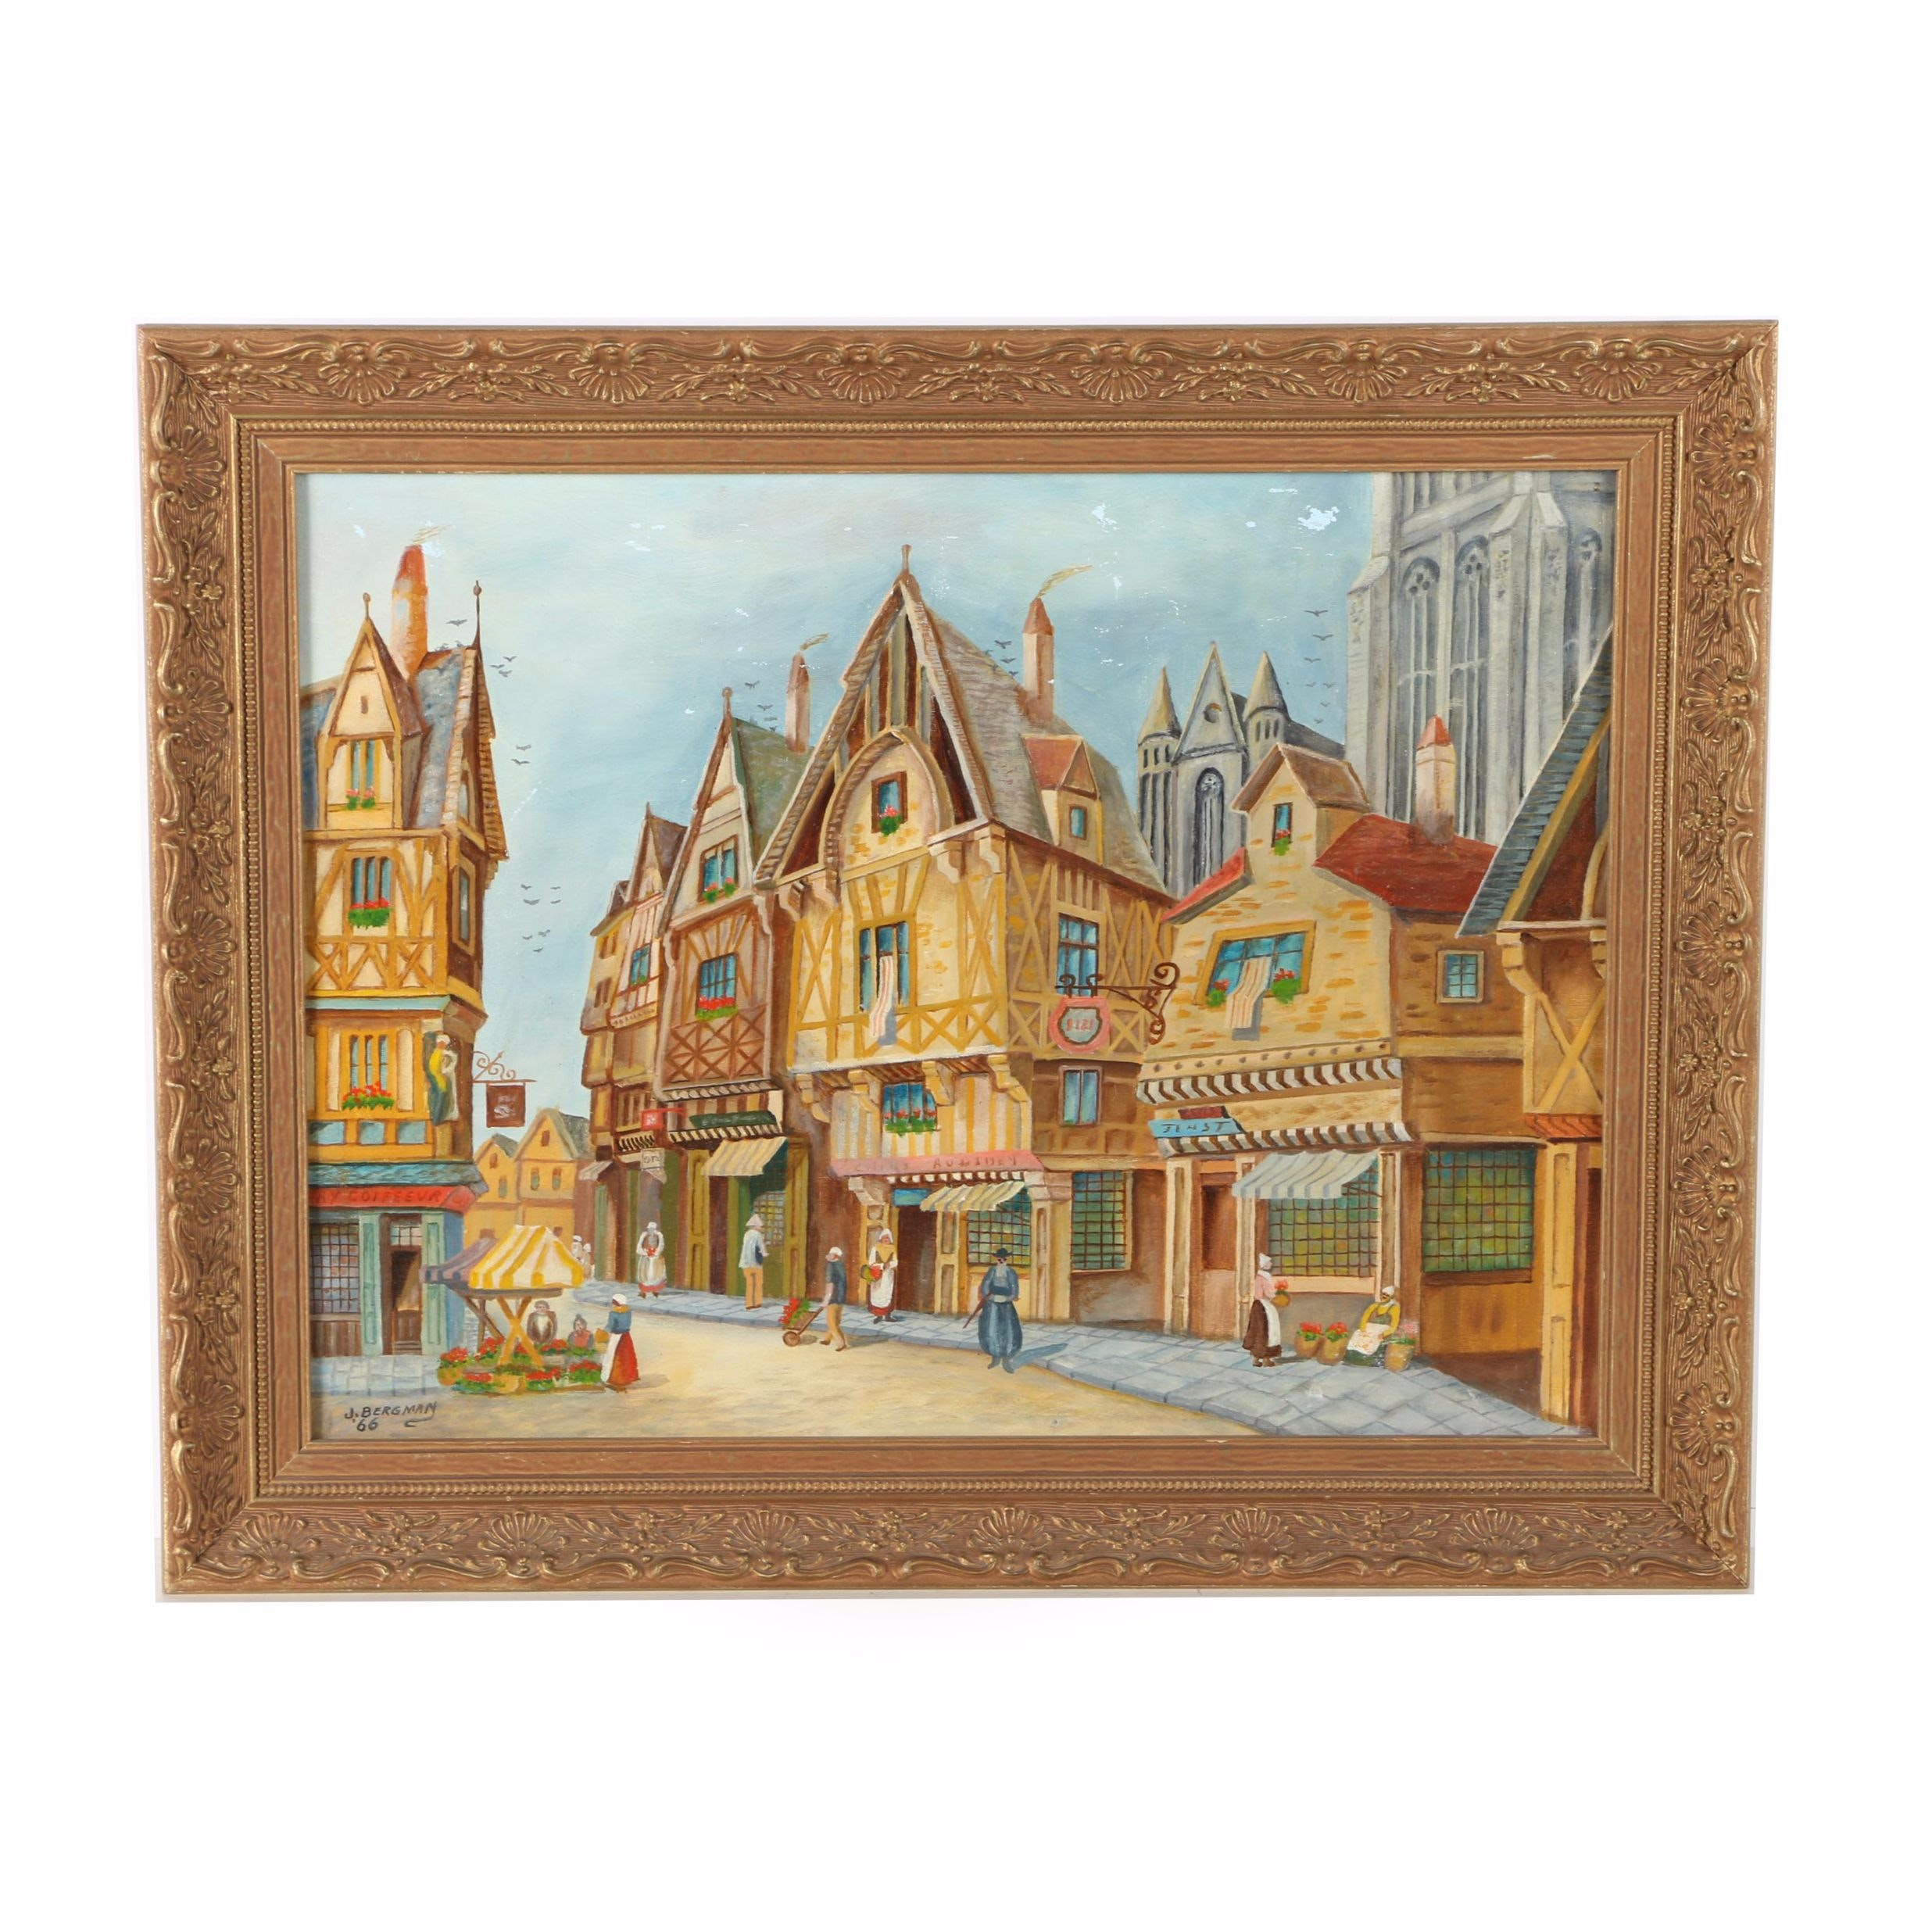 1966 J. Bergman Oil Painting on Canvas of Rothenburg ob der Tauber